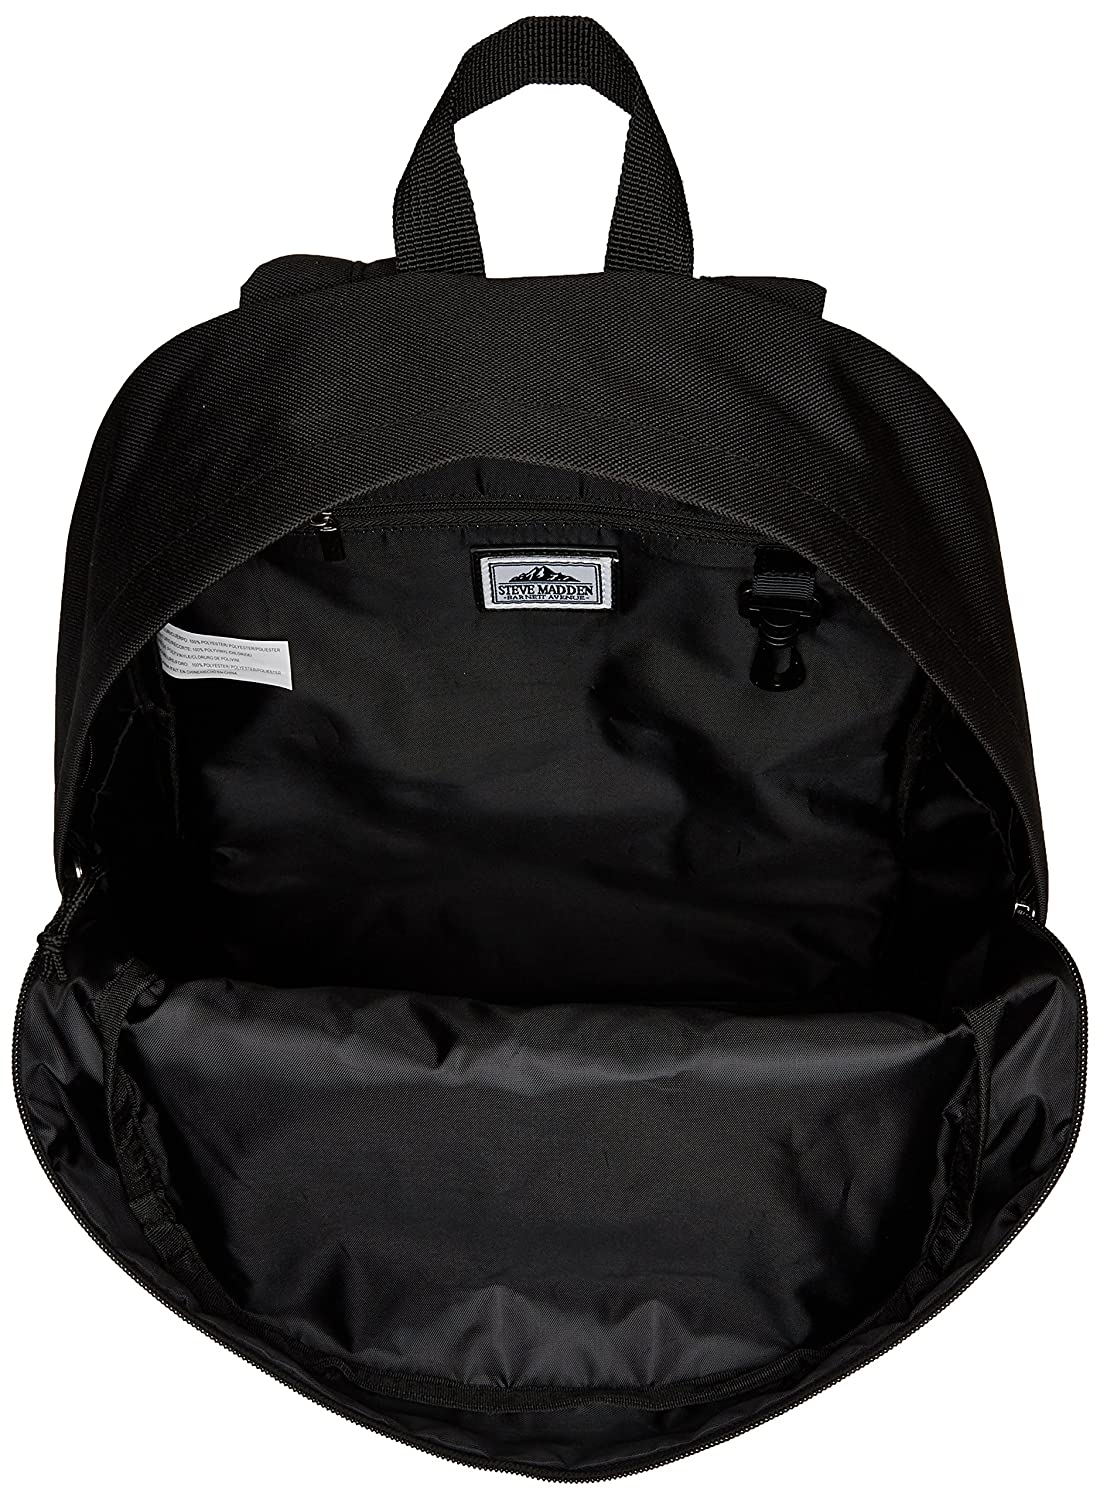 87f70be738f Amazon.com: Steve Madden Men's Classic Backpack, black check, One Size:  Clothing